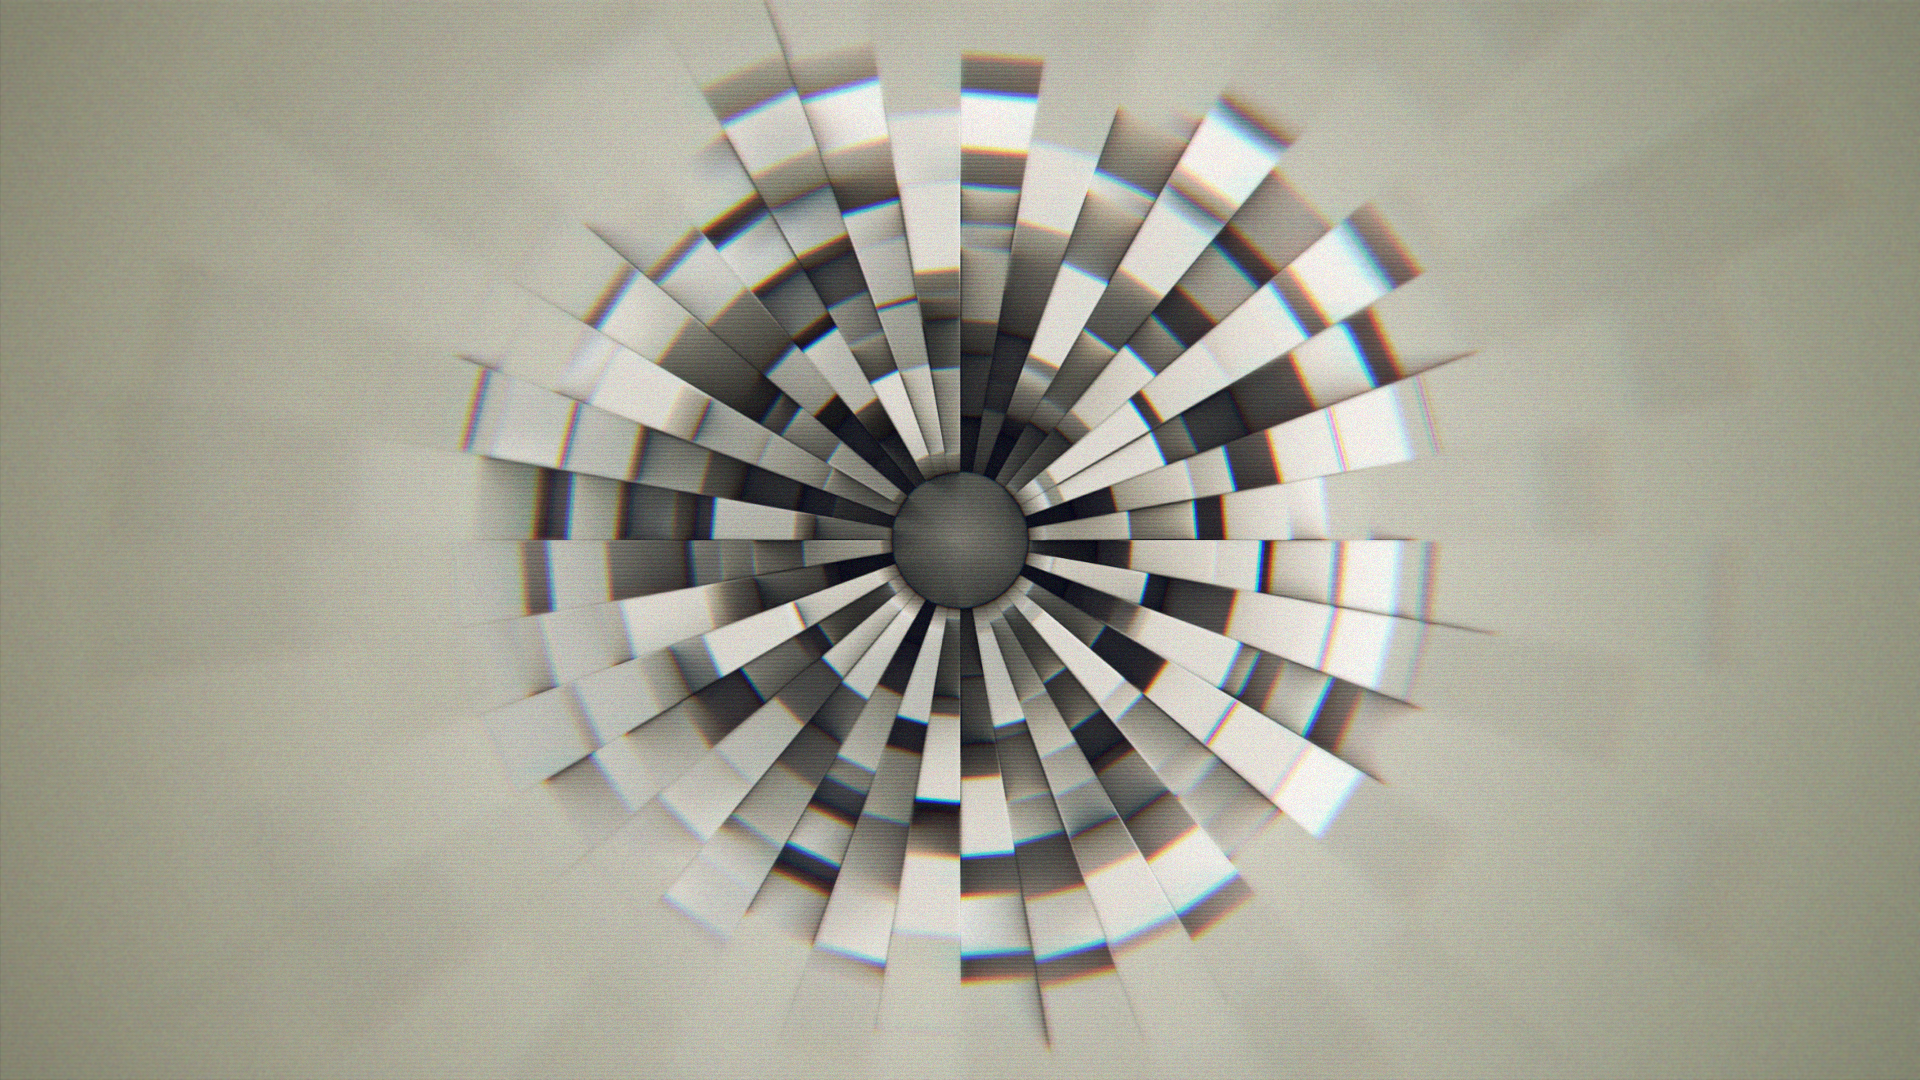 022714_Sphere_Extrude_1080.png